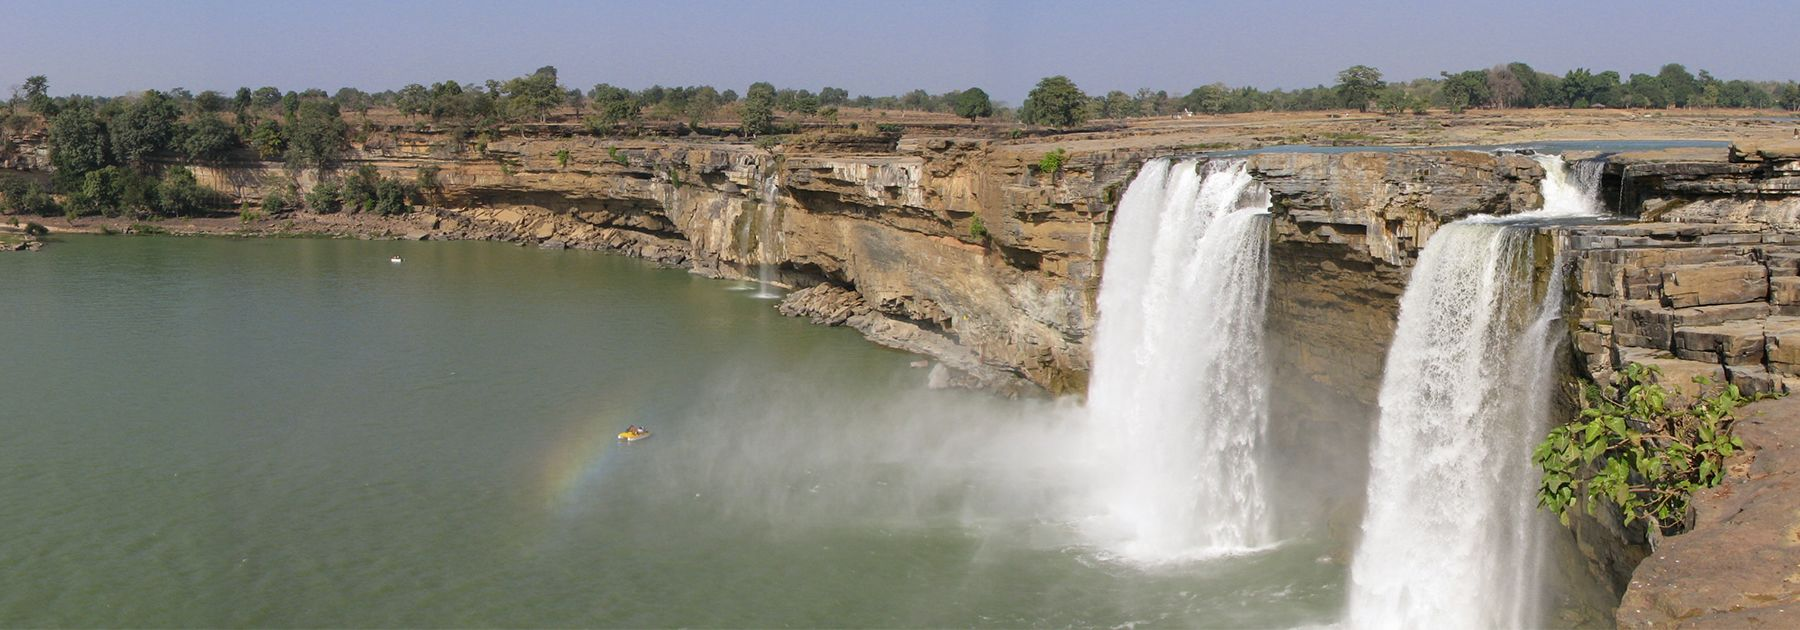 A view of Chitrakot Falls in Jagdalpur. (Vinay Nihal, licensed under CC BY-SA 3.0)